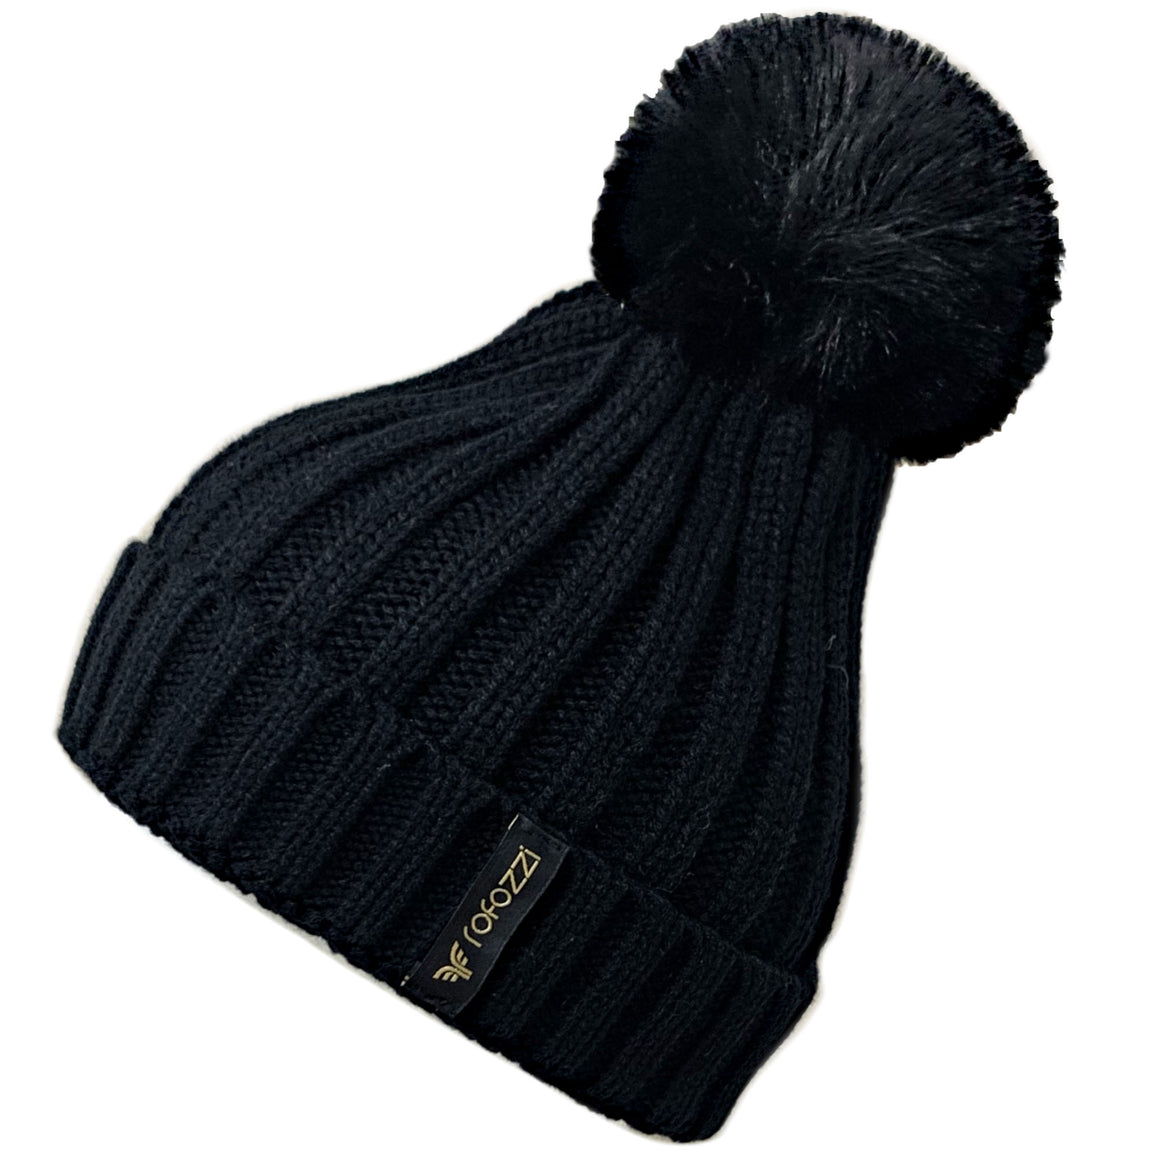 Winter Beanie Pompom Hat Women Detachable Faux Fur Ball - Black